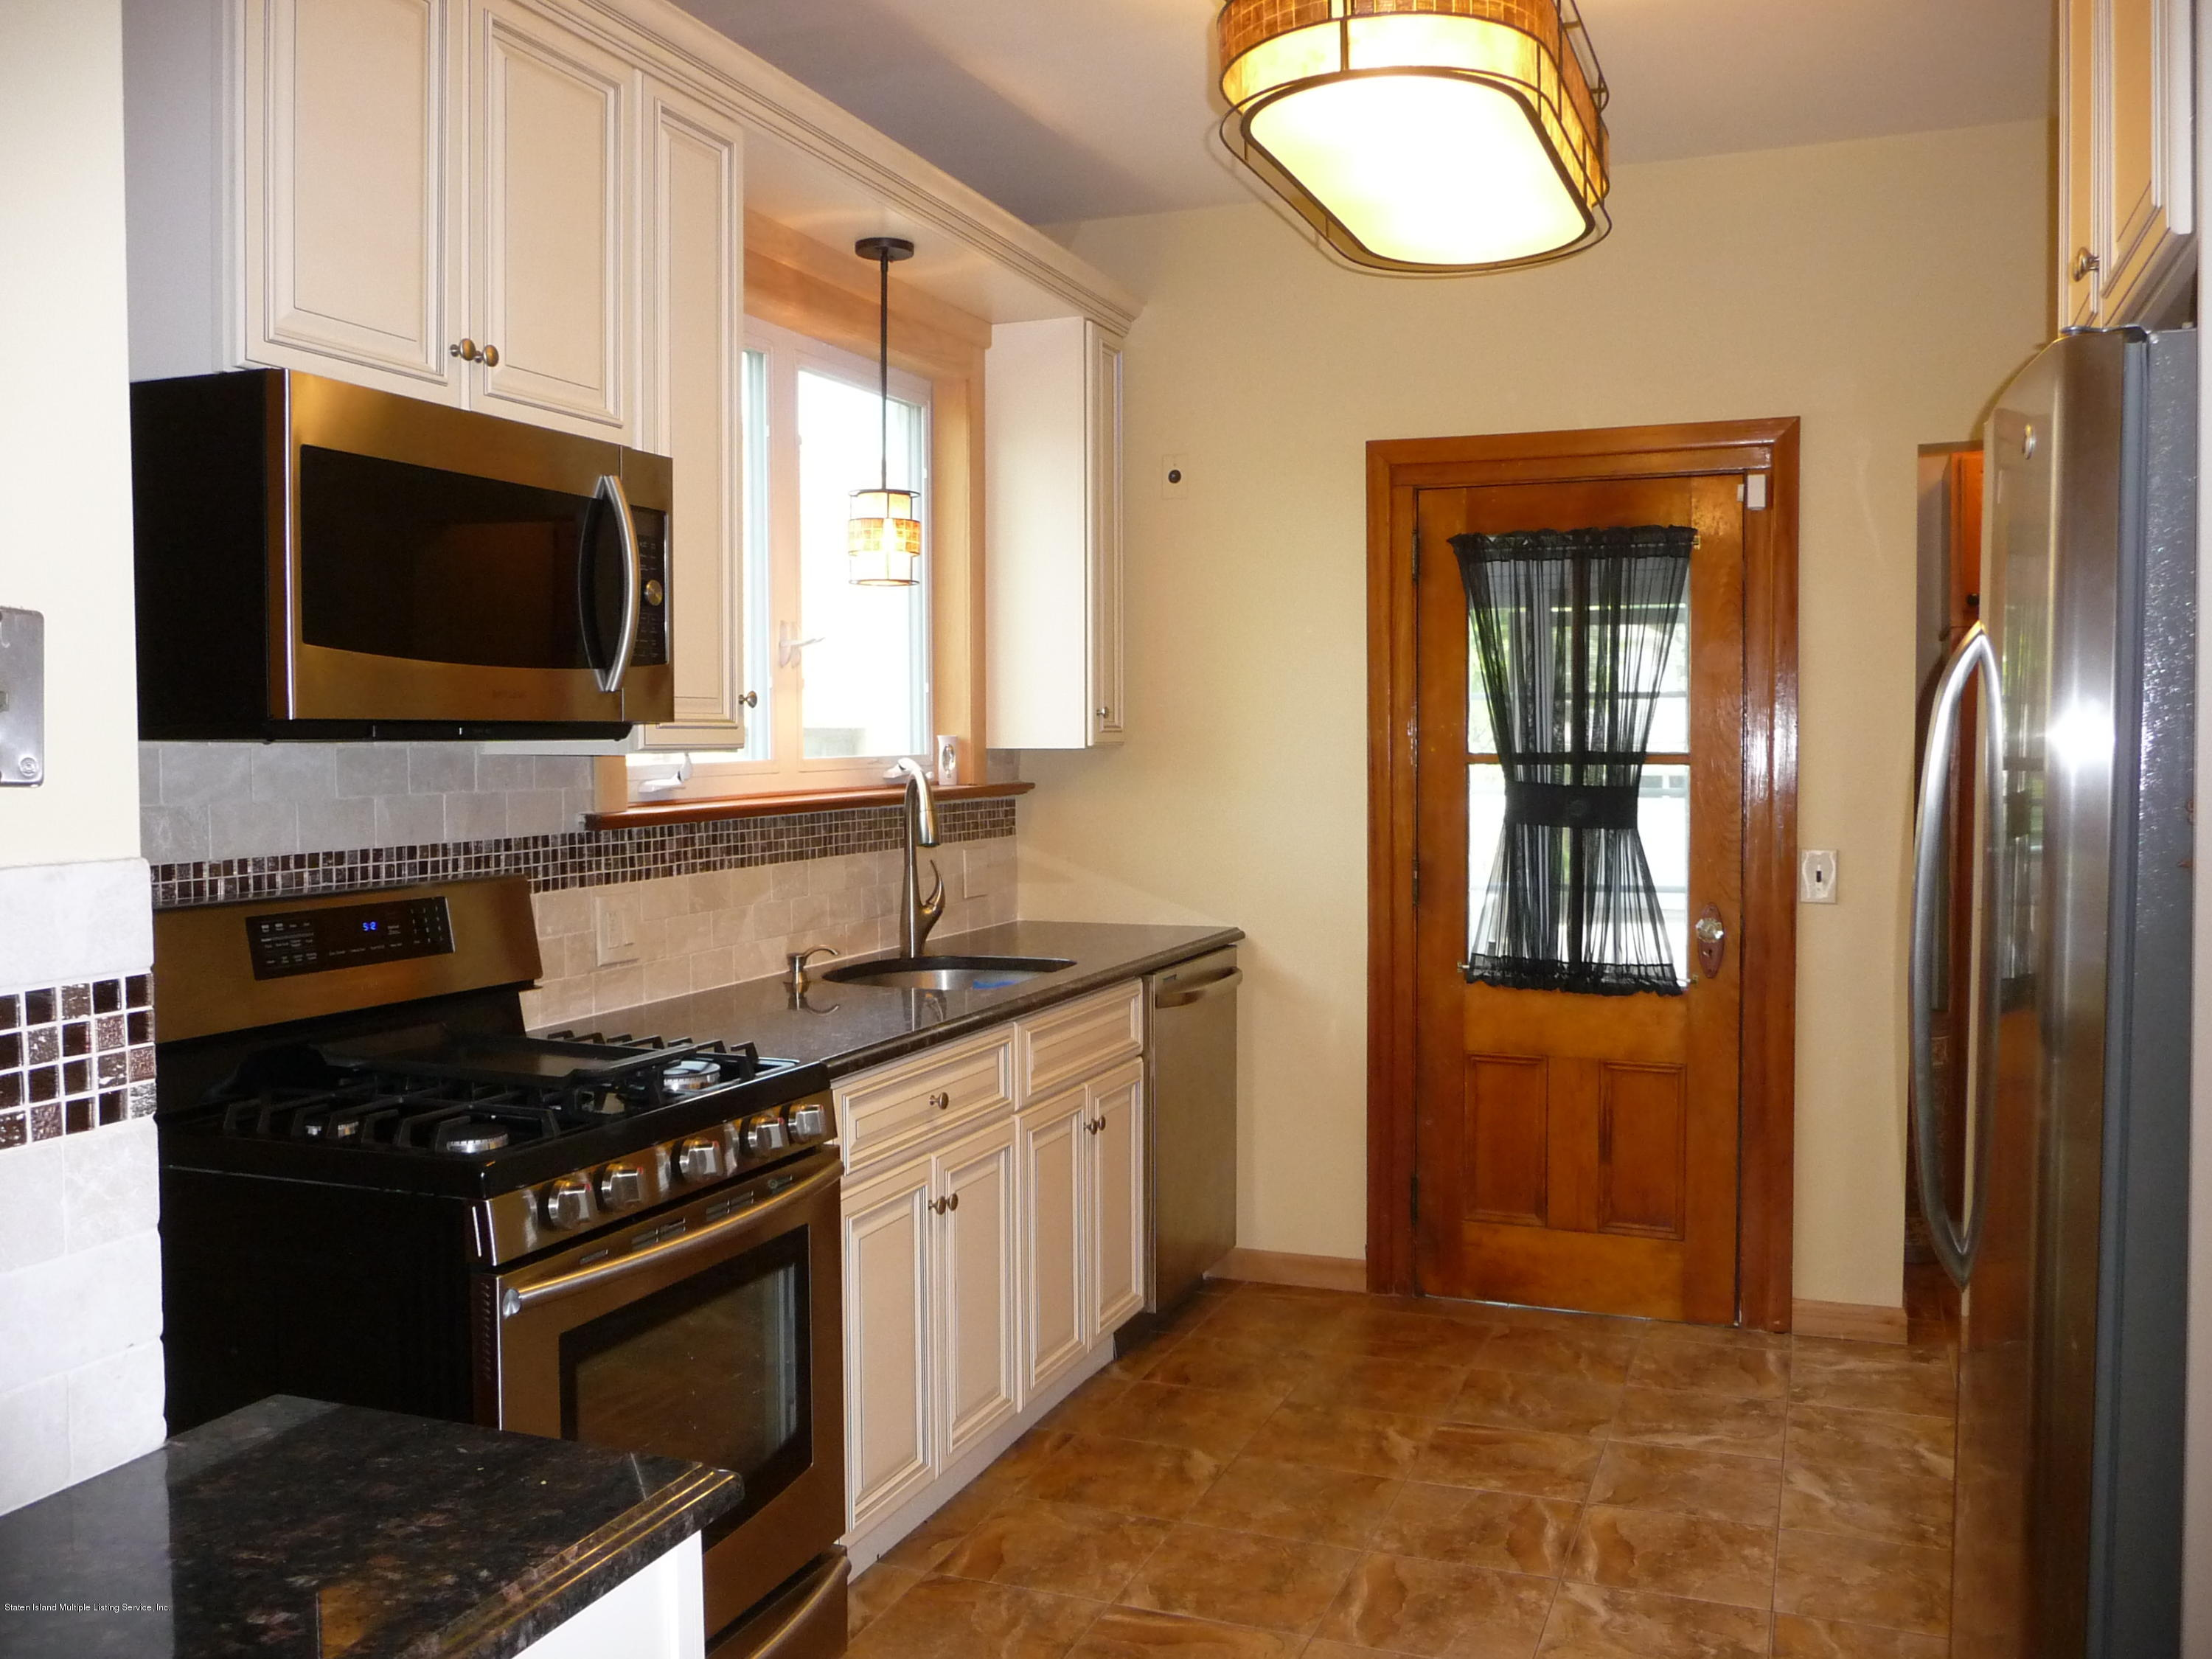 Single Family - Detached 77 Todt Hill Road  Staten Island, NY 10314, MLS-1129718-15